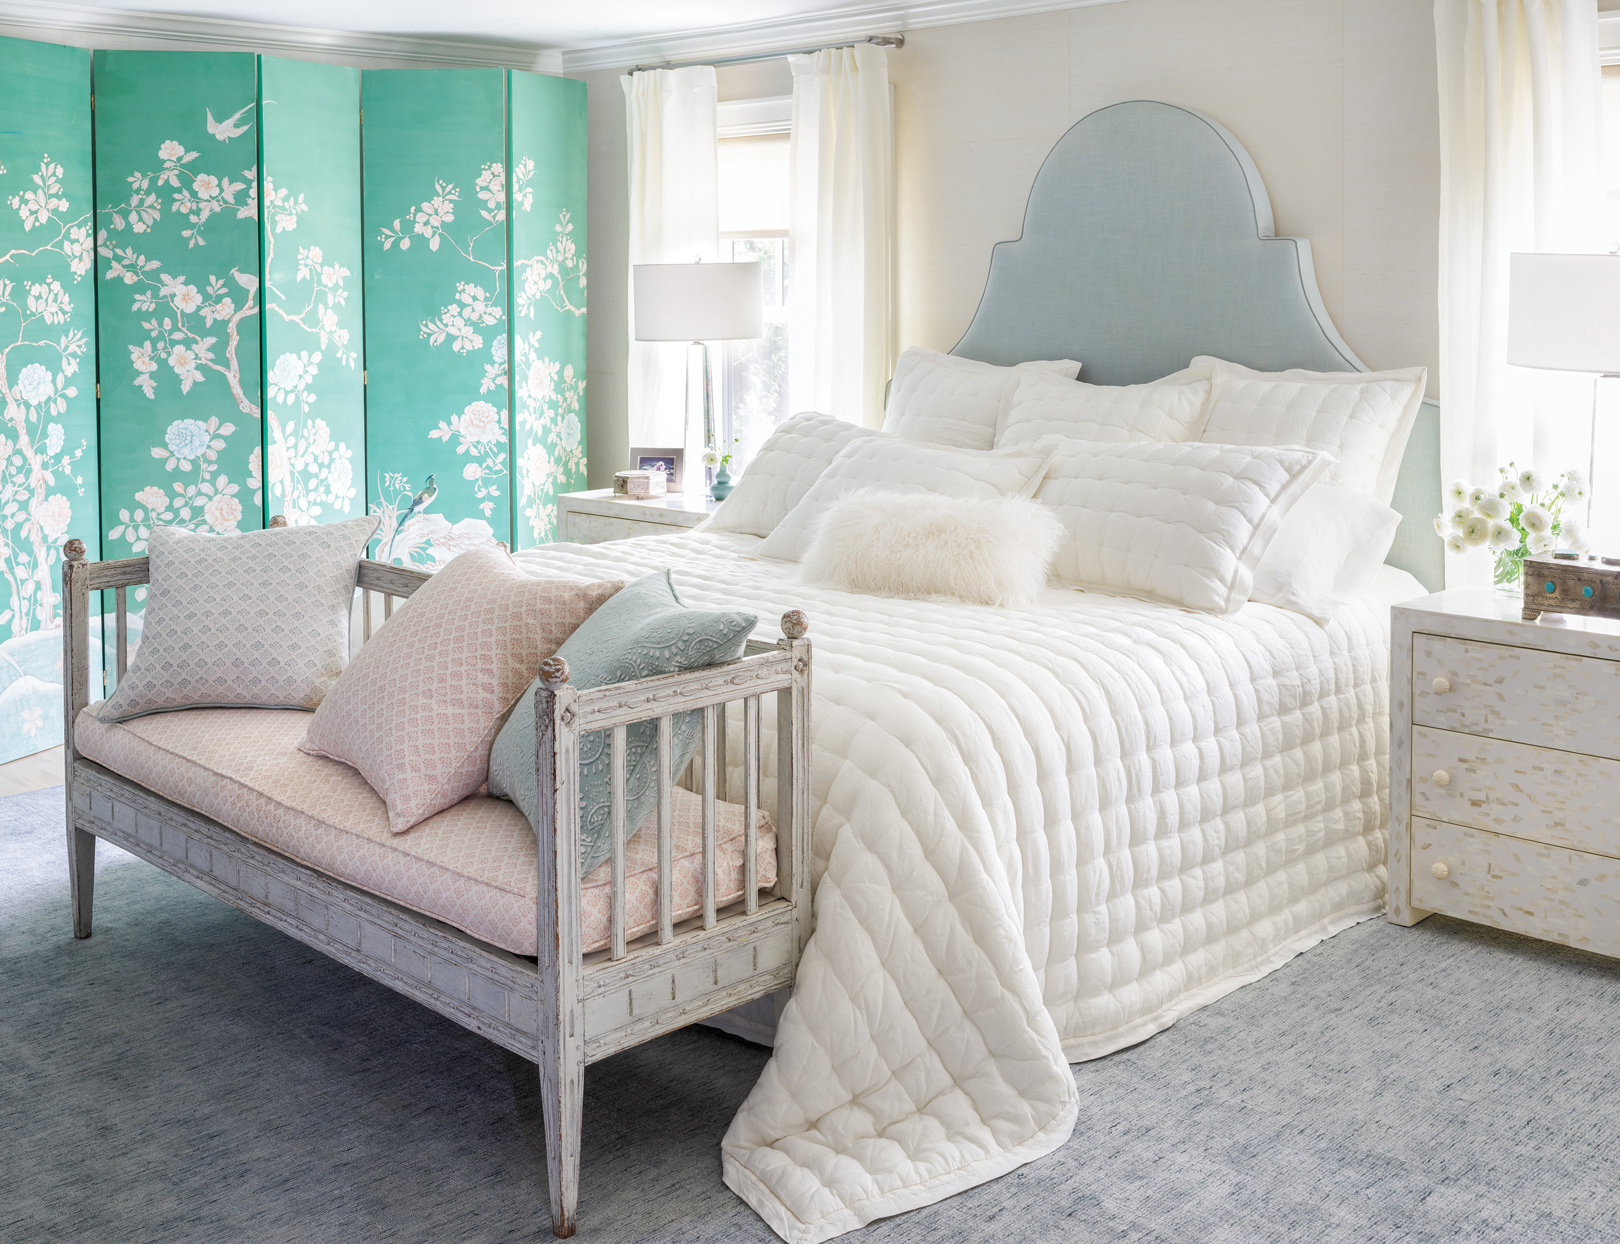 teal white and cream bedroom set